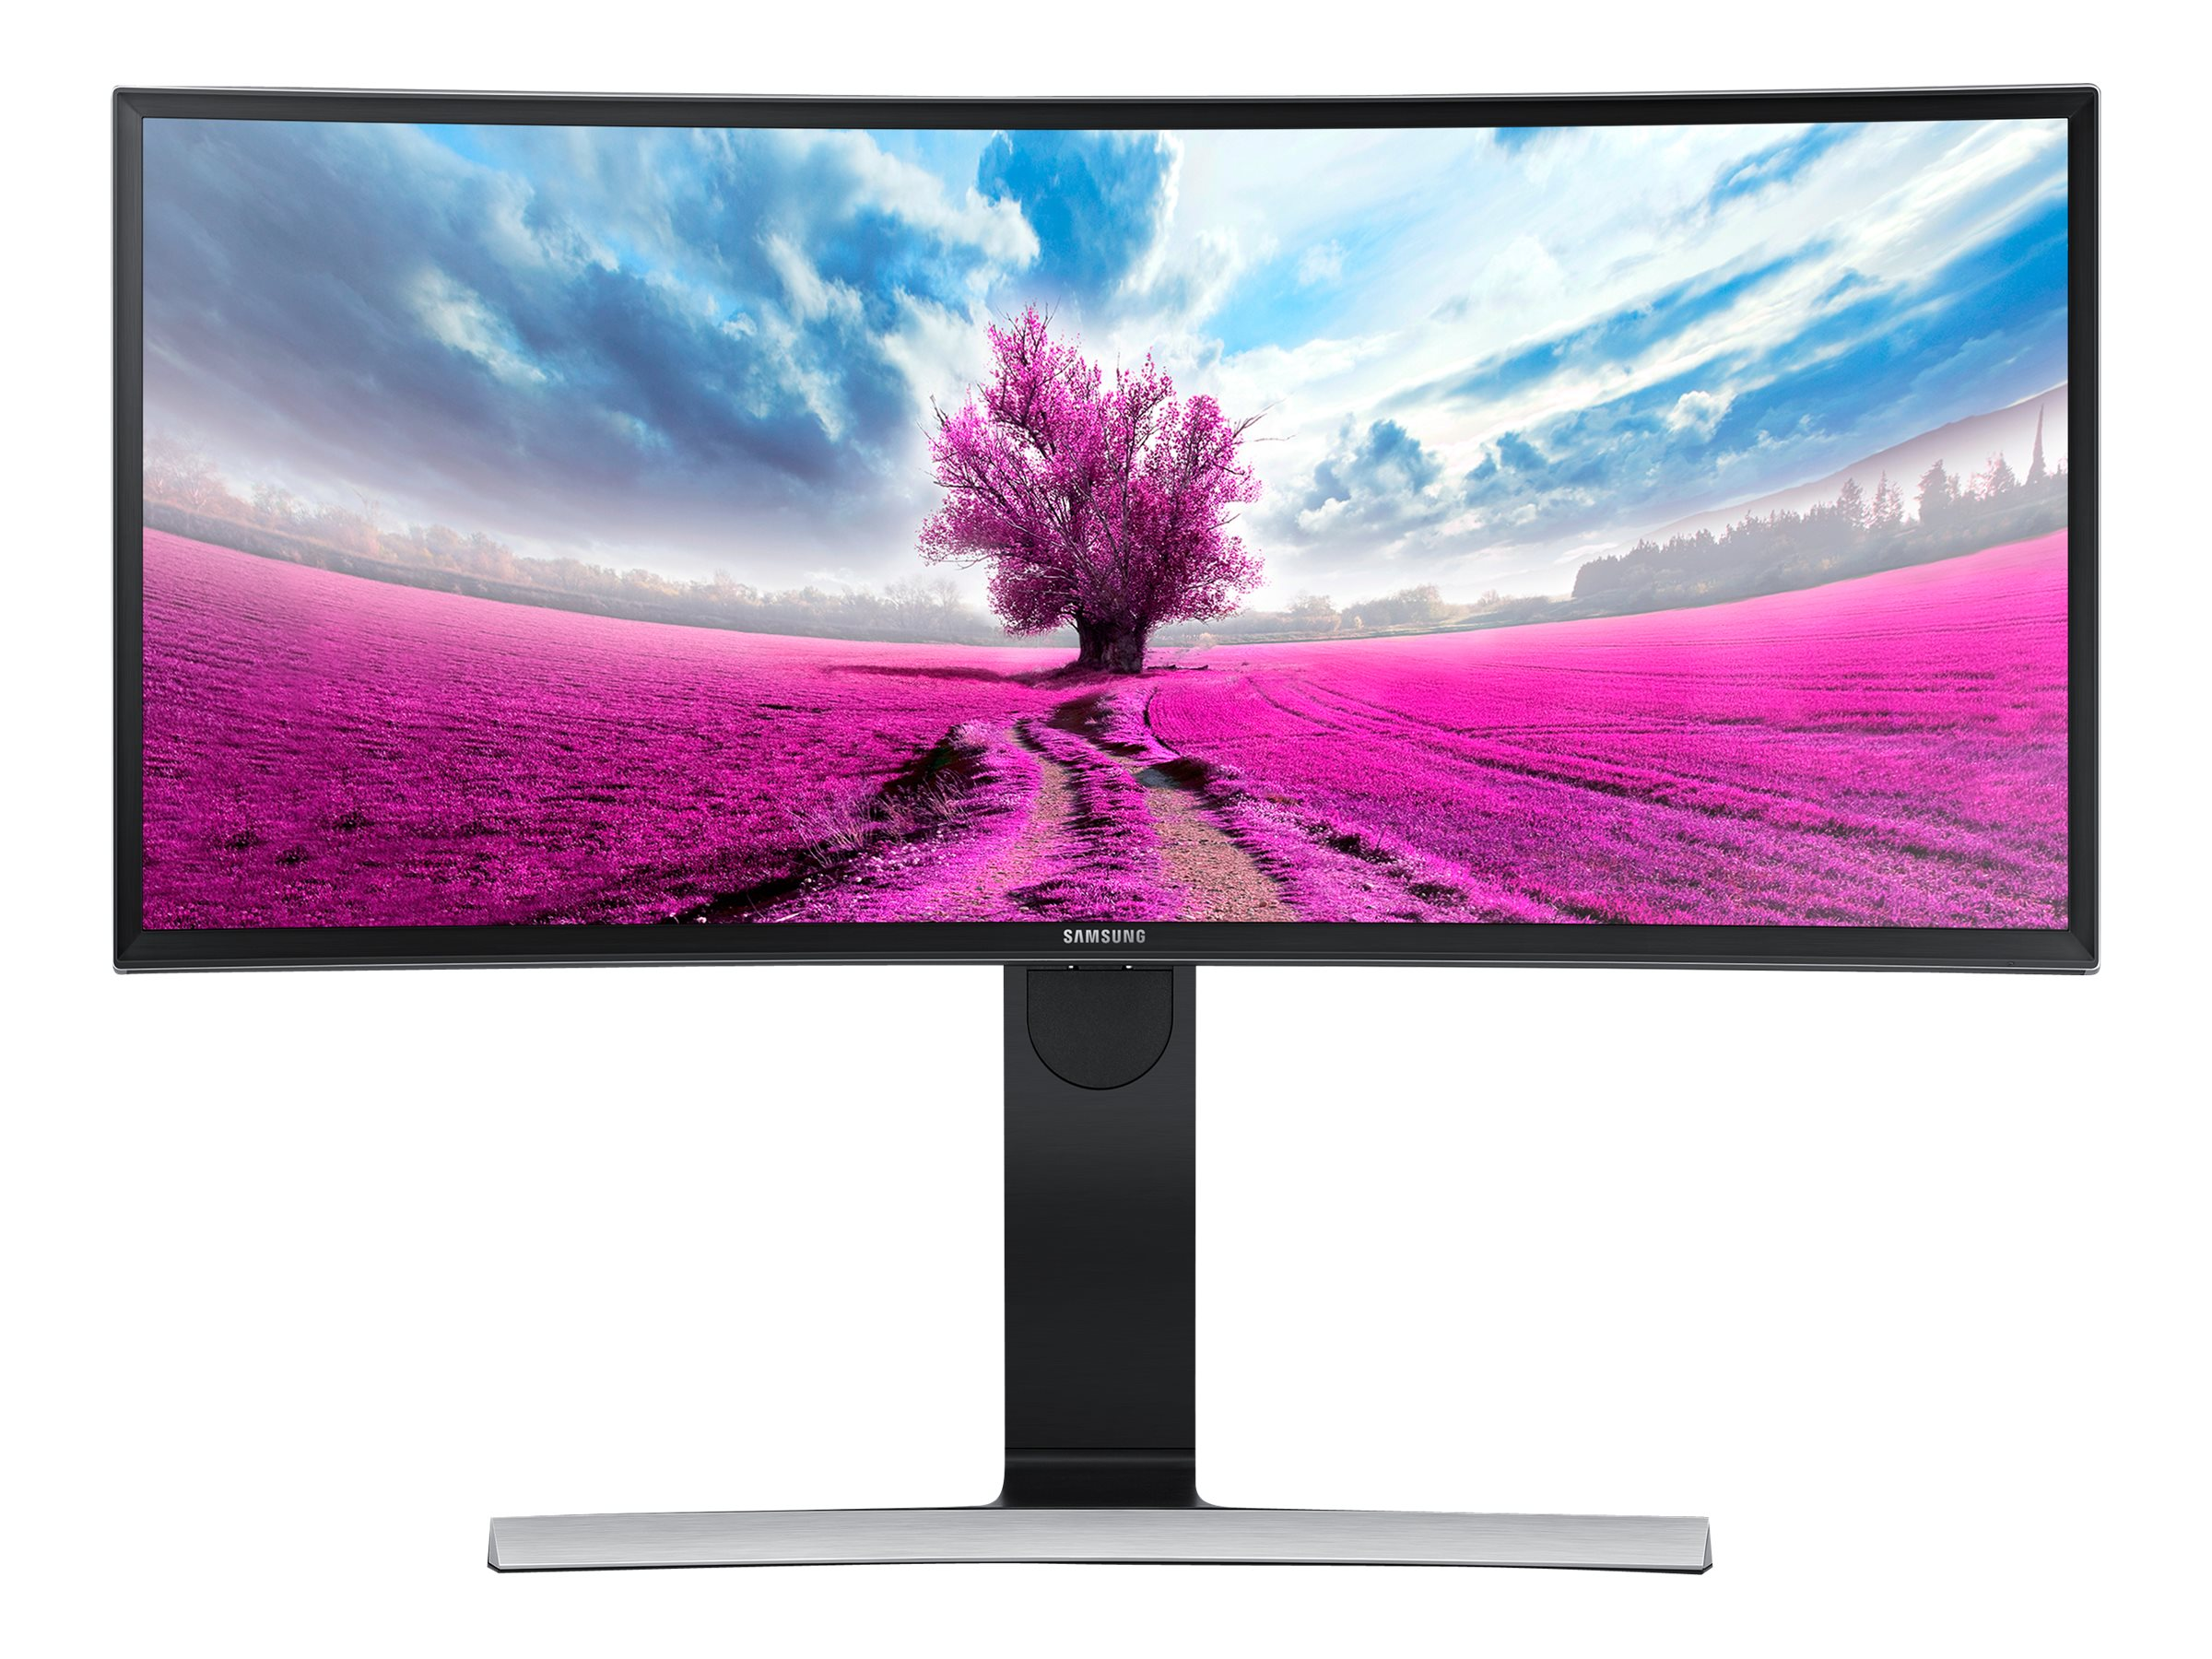 Samsung 29 SE790C WFHD LED-LCD Ultrawide Curved Monitor, Black